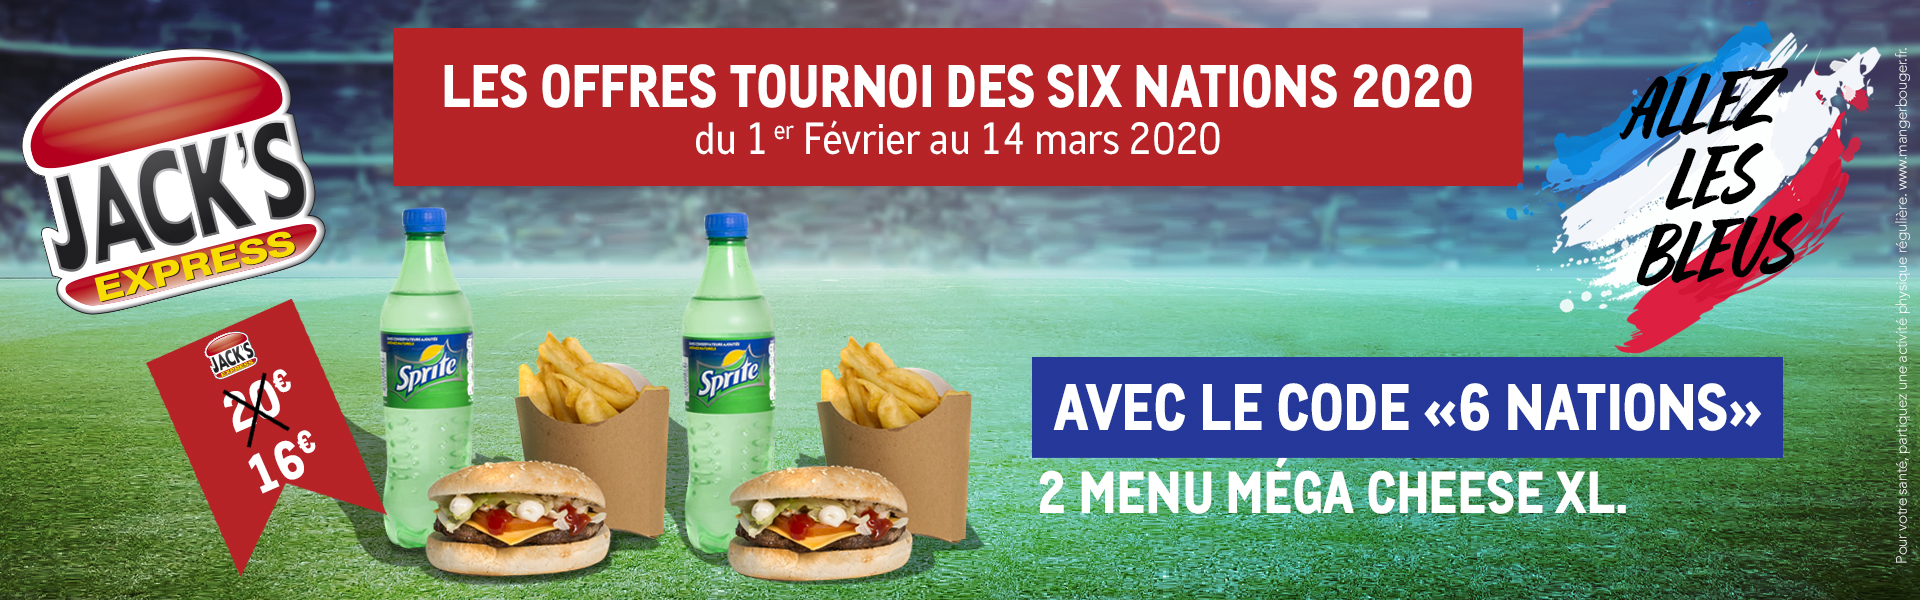 Promo Menu méga cheese XL tournoi des six nations rugby